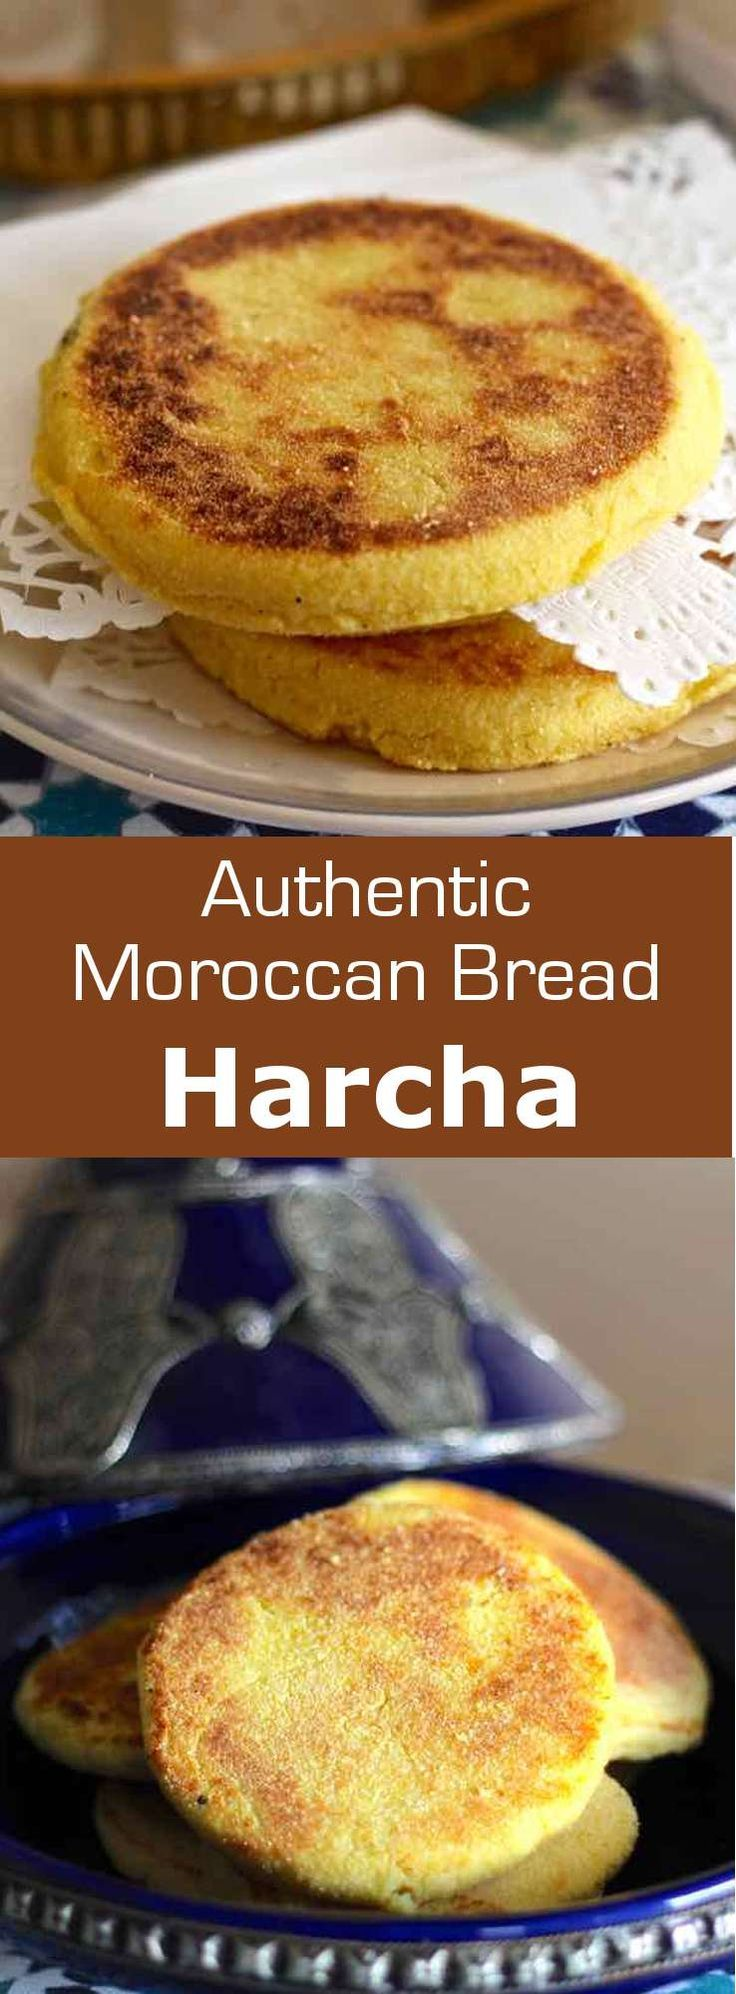 Harcha (حرشة) is a Moroccan bread that takes the shape of a galette and is prepared with semolina and butter or olive oil. #Moroccan #Morocco #196flavors